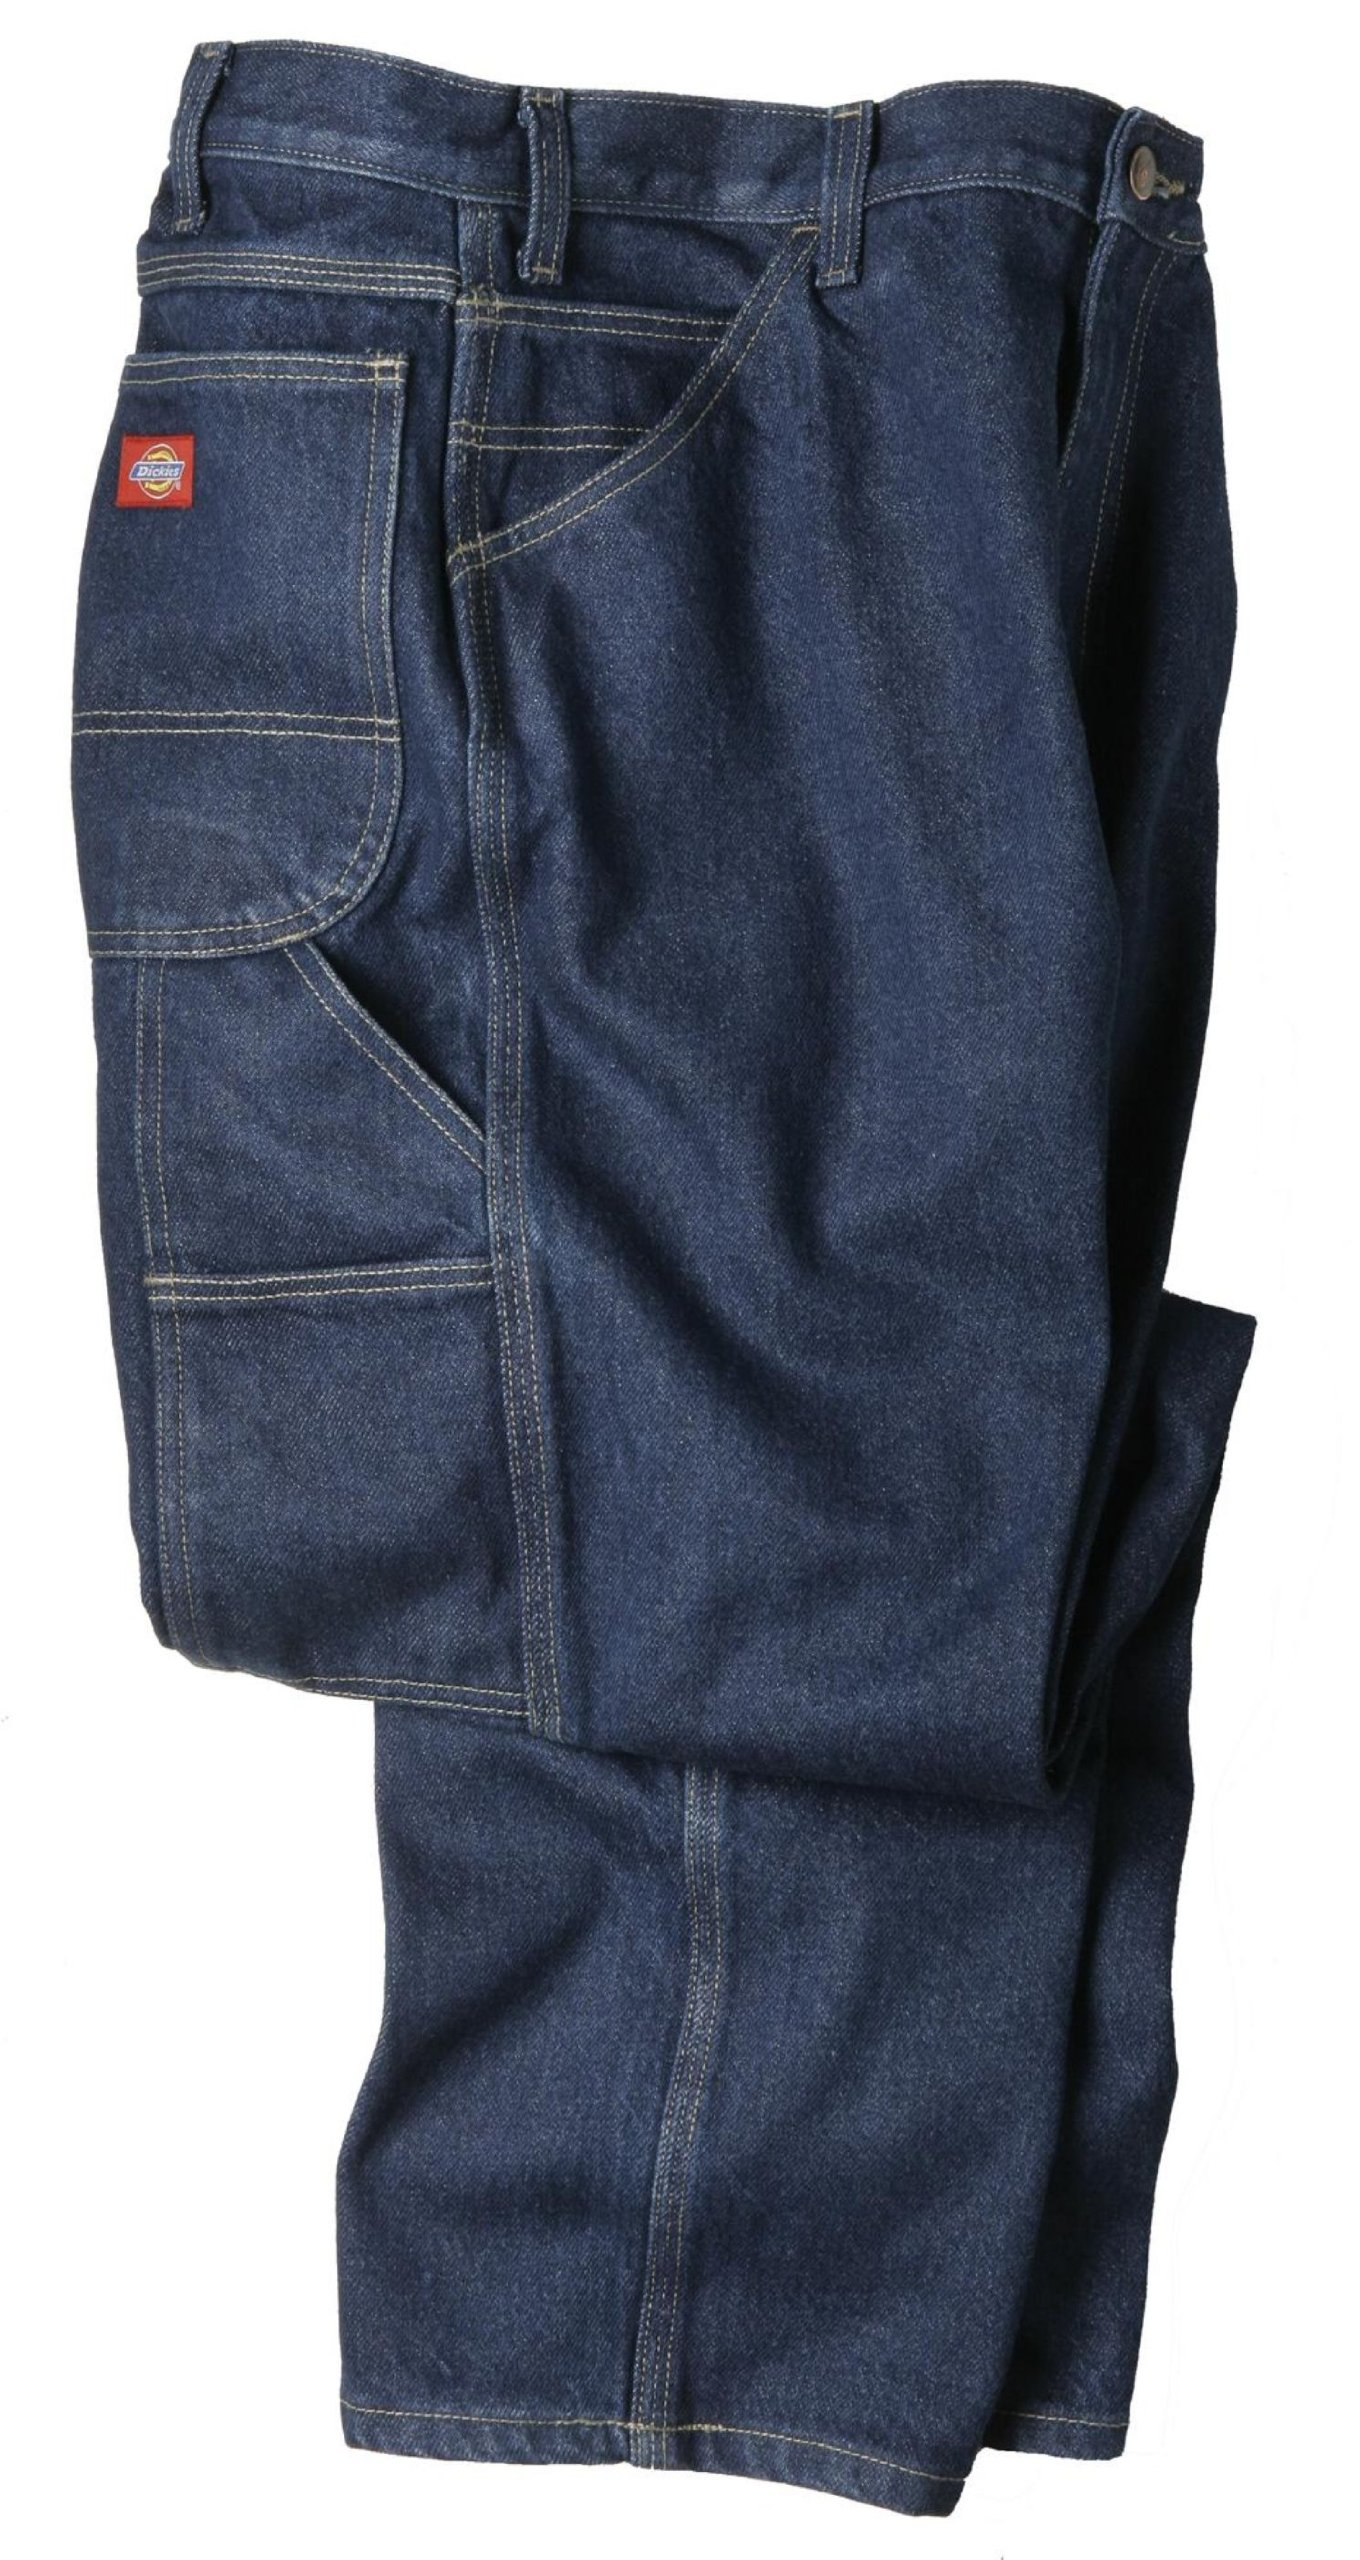 Dickies Occupational Workwear LU200RNB5030 LU200 Industrial Carpenter Denim Jean, Fabric, 50'' x 30'', Rinsed Indigo Blue